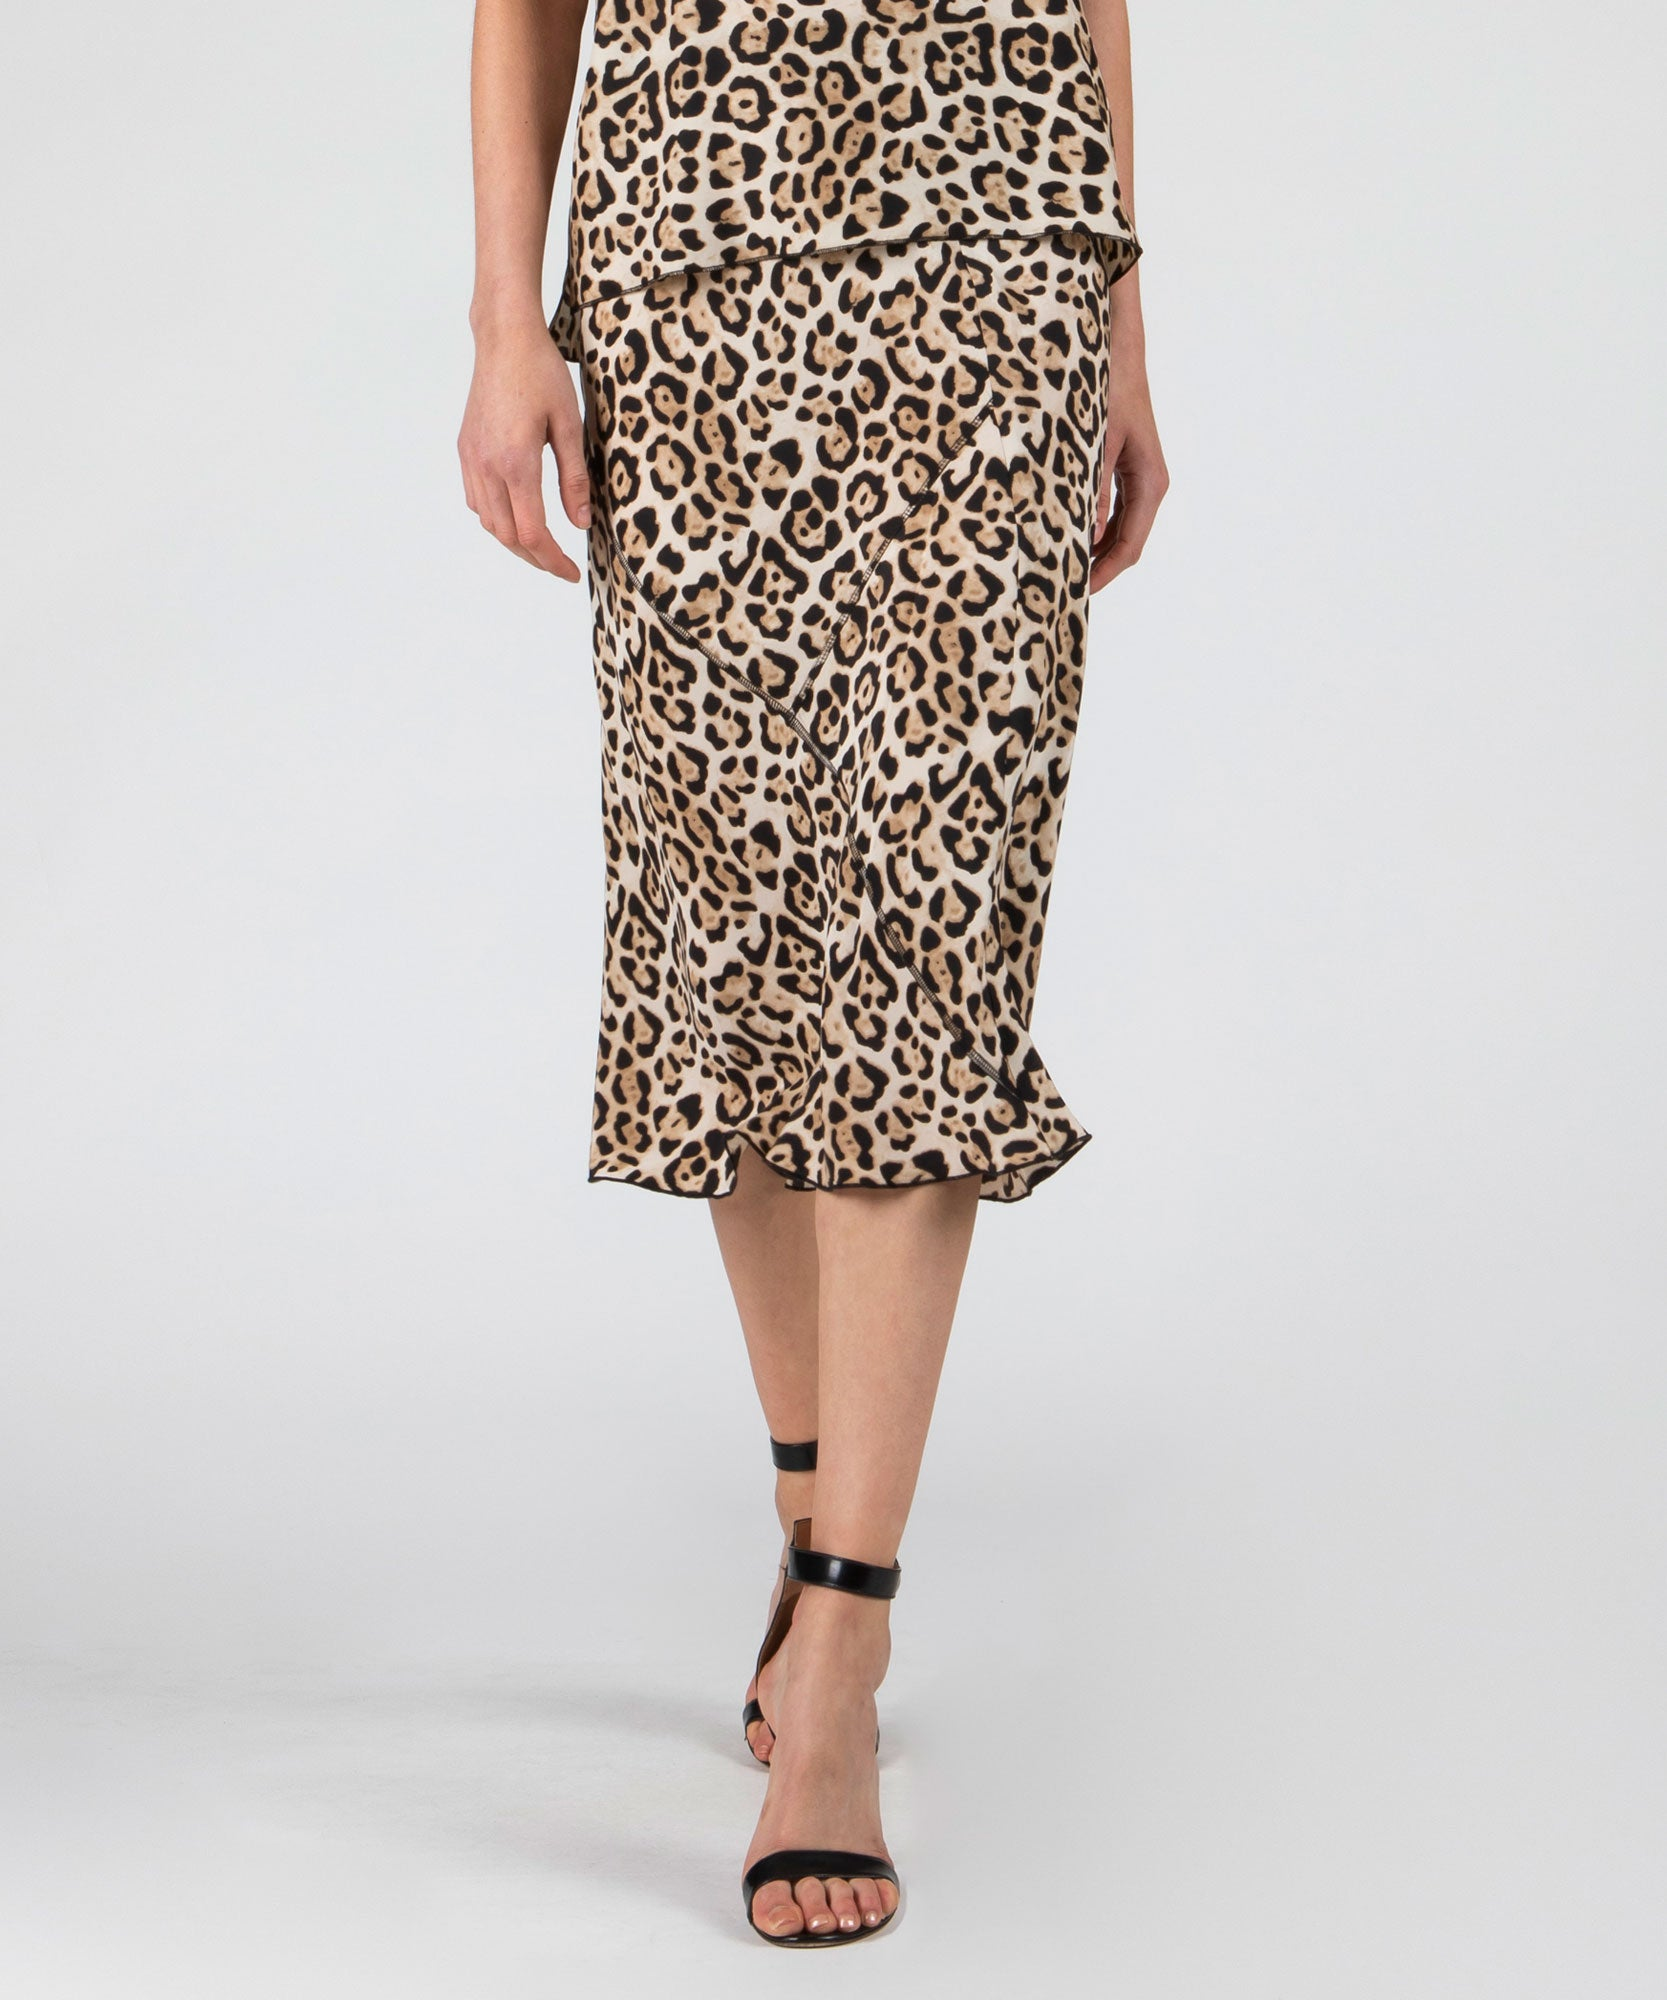 Leopard Silk Skirt - Women's Skirt by ATM Anthony Thomas Melillo